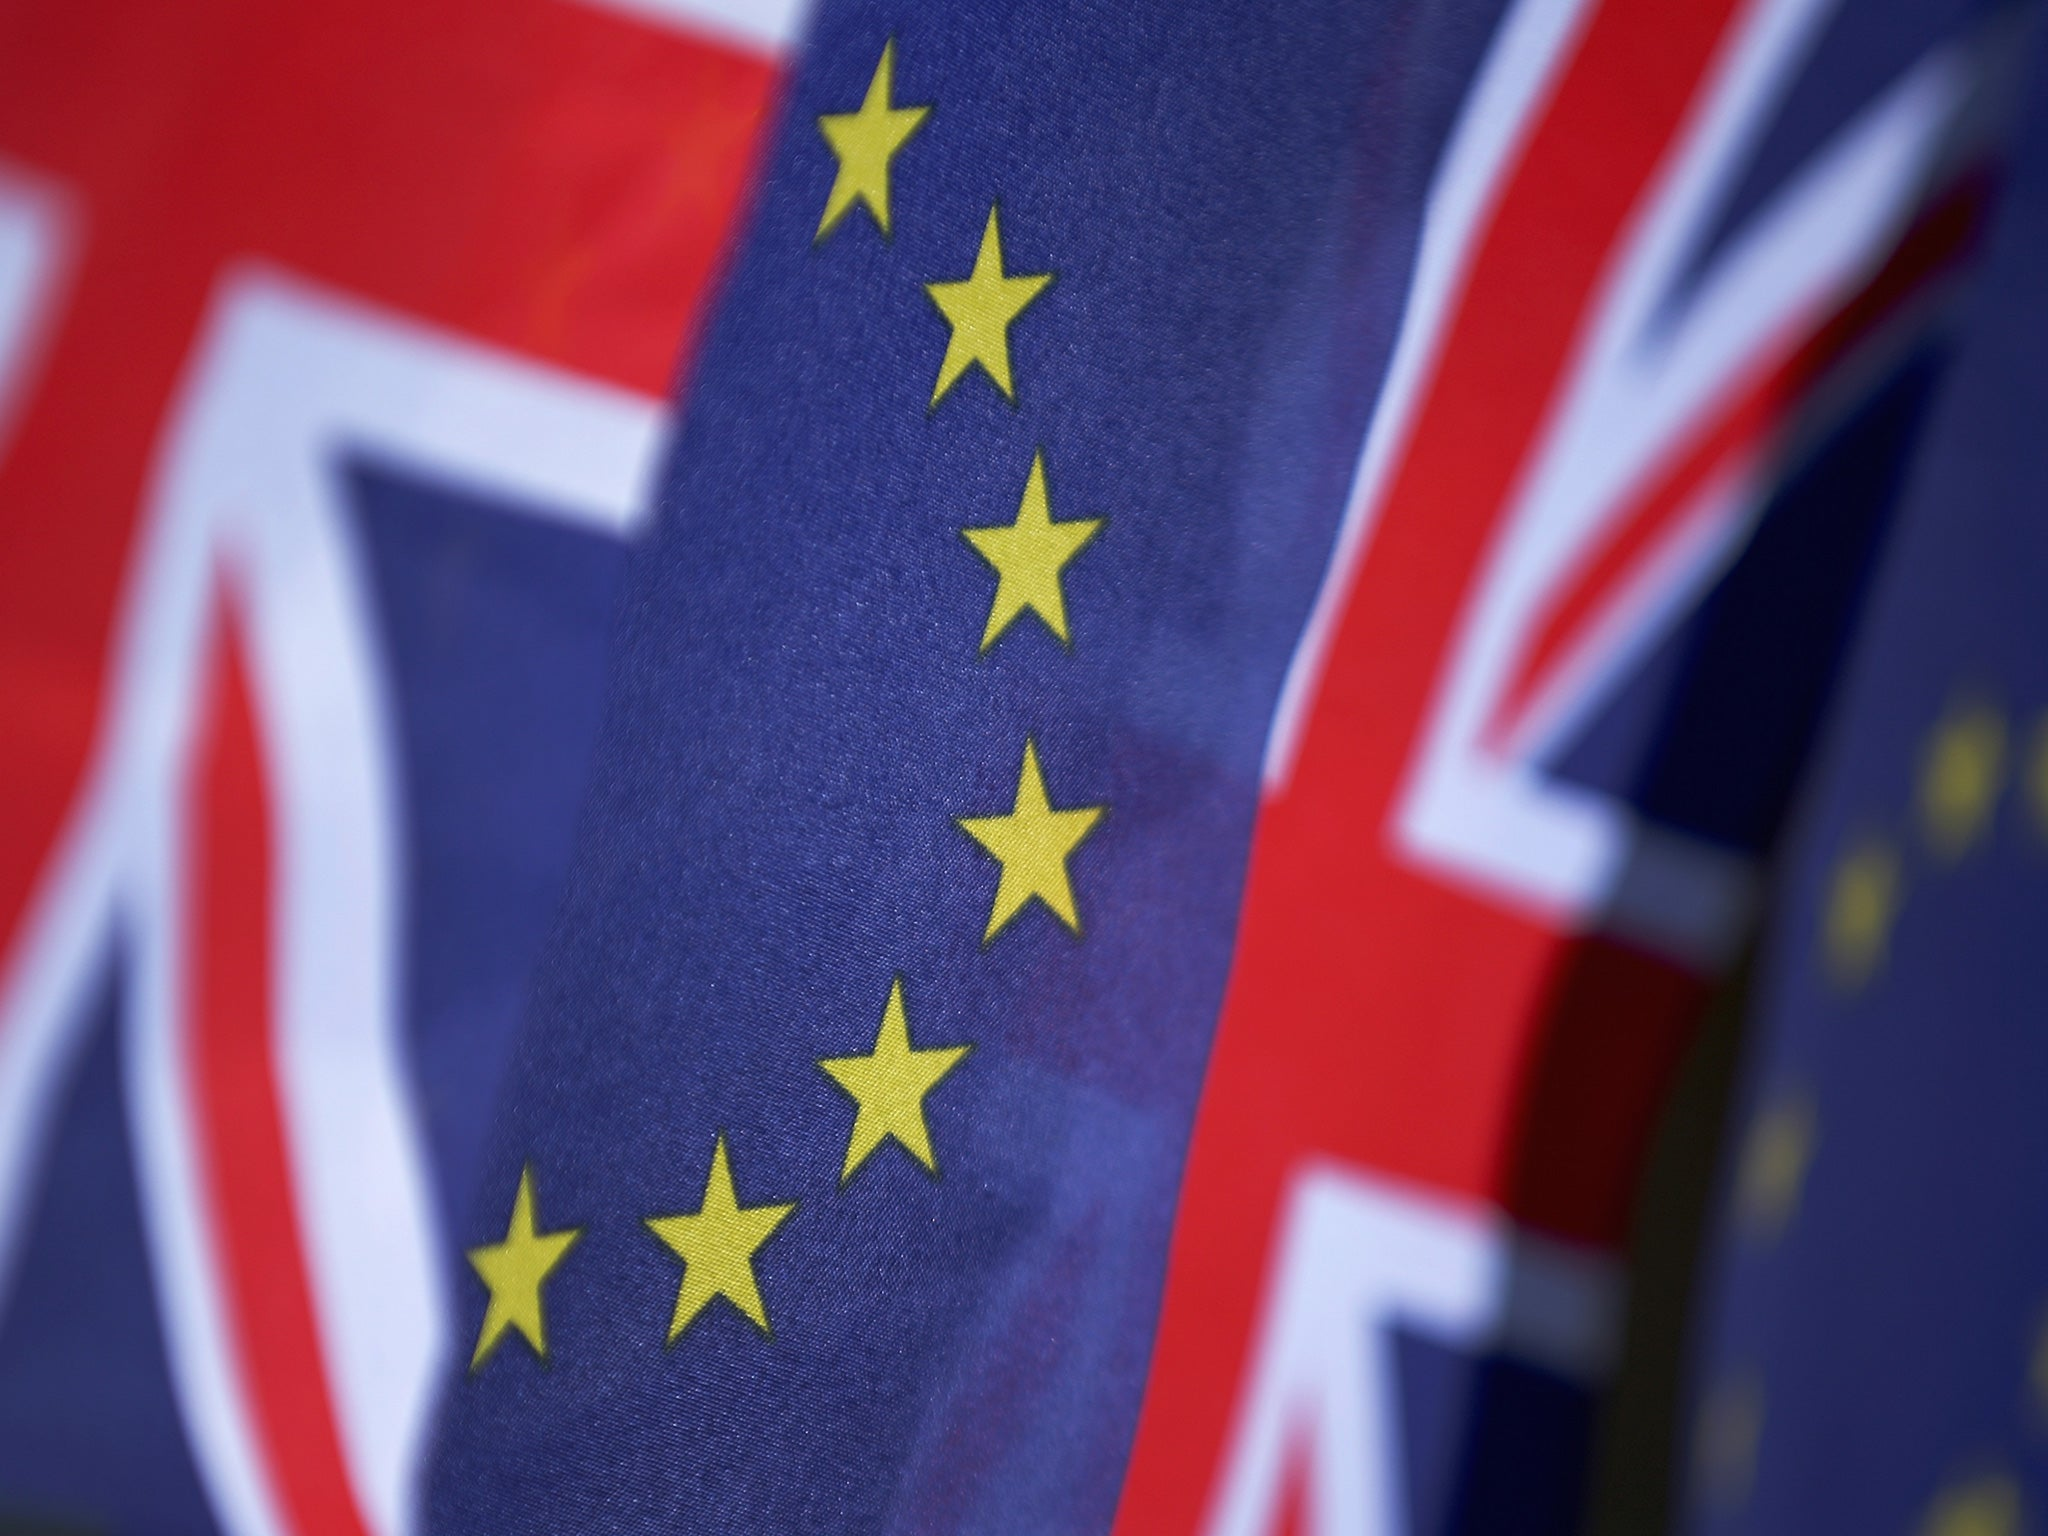 uk based businesses across the eu essay Report on uk based businesses trading across the eu20 proceduresusing information from the course, plus as many other sources to research, i will look in11newspaper articles12internet13marketing materials14text books15company publicity materials.